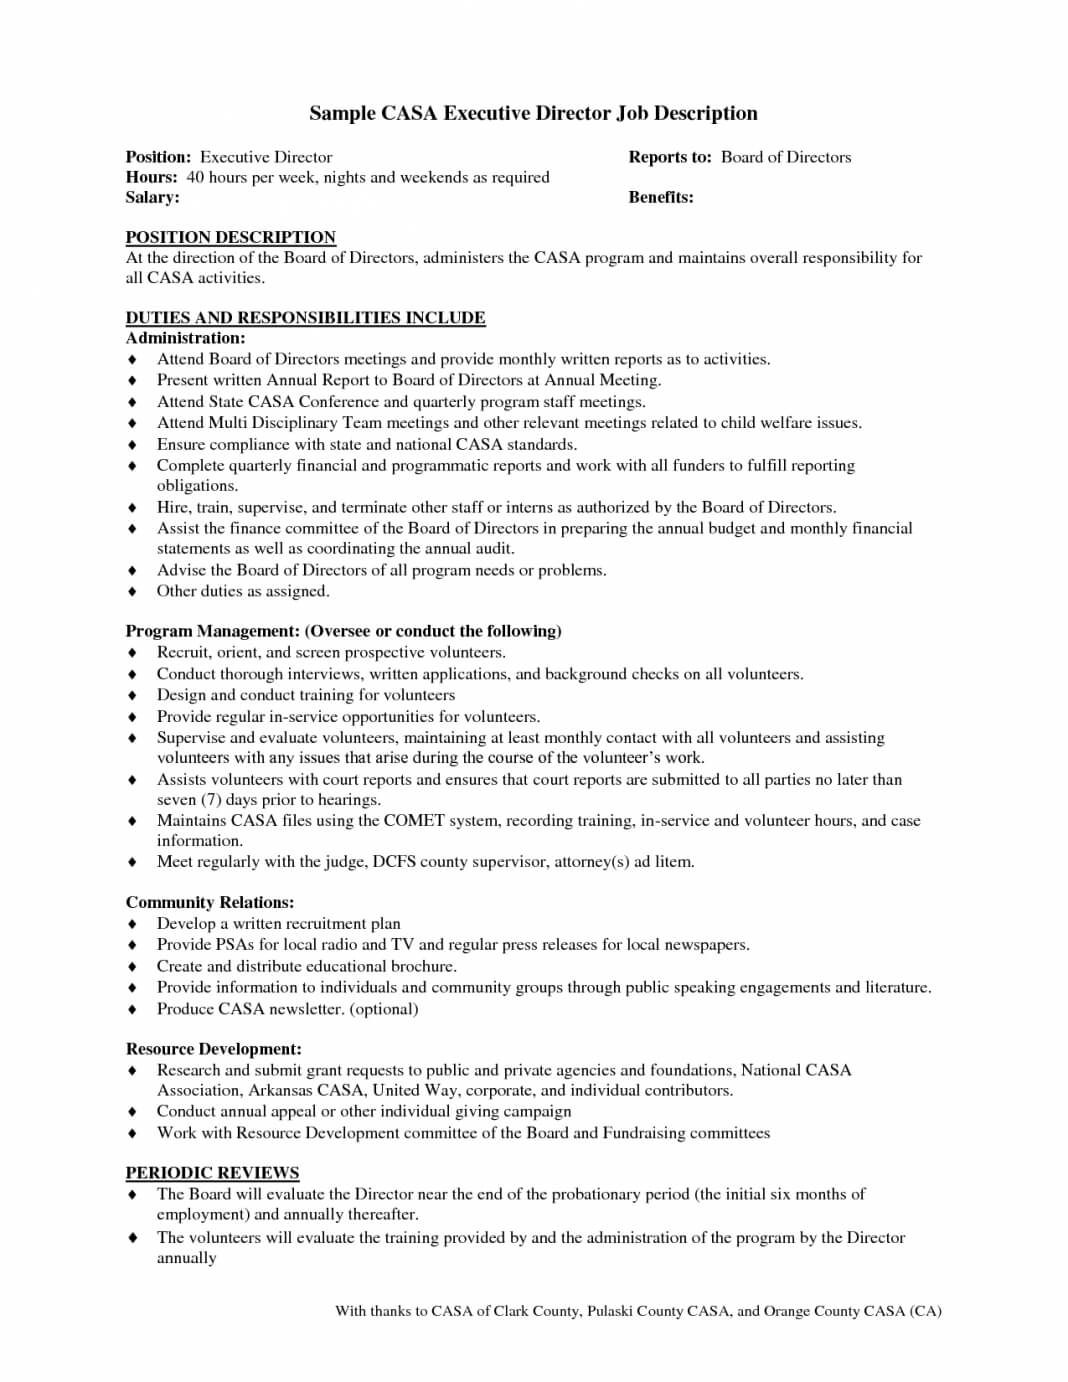 Board Report E Clerical Associate Job Description Reporting Within Health And Safety Board Report Template